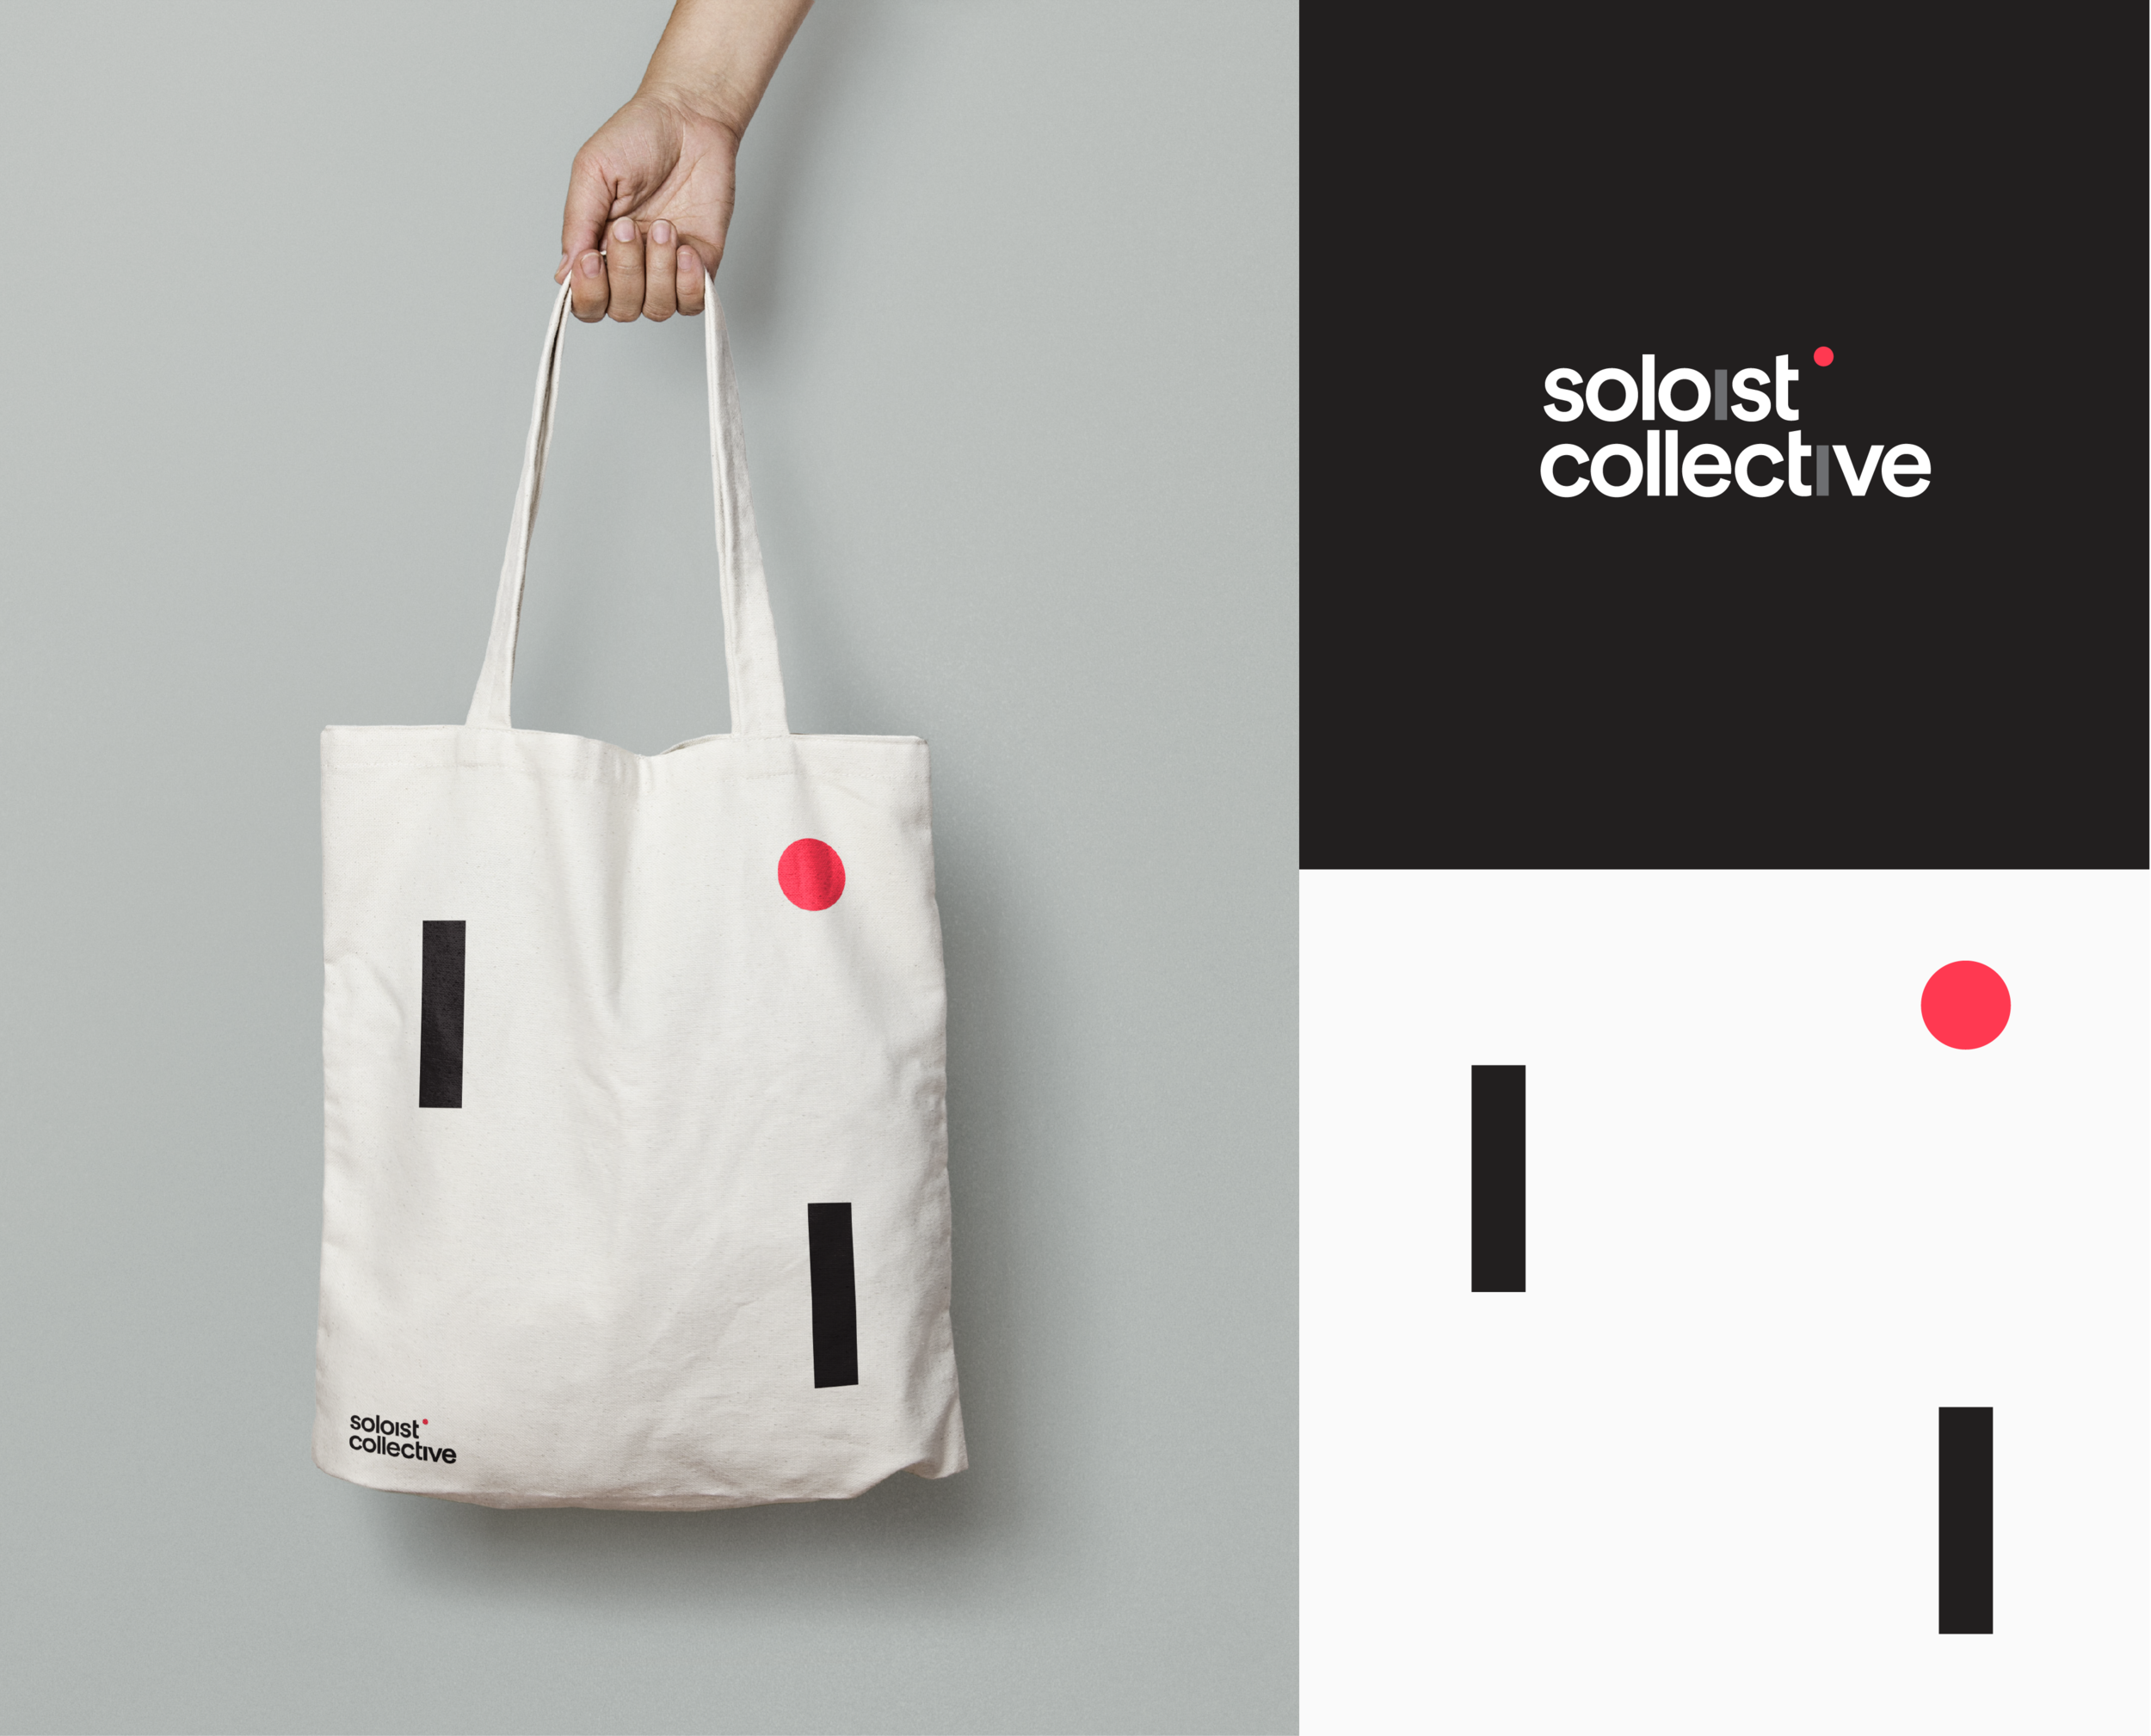 Soloist collective design 4@2x.png